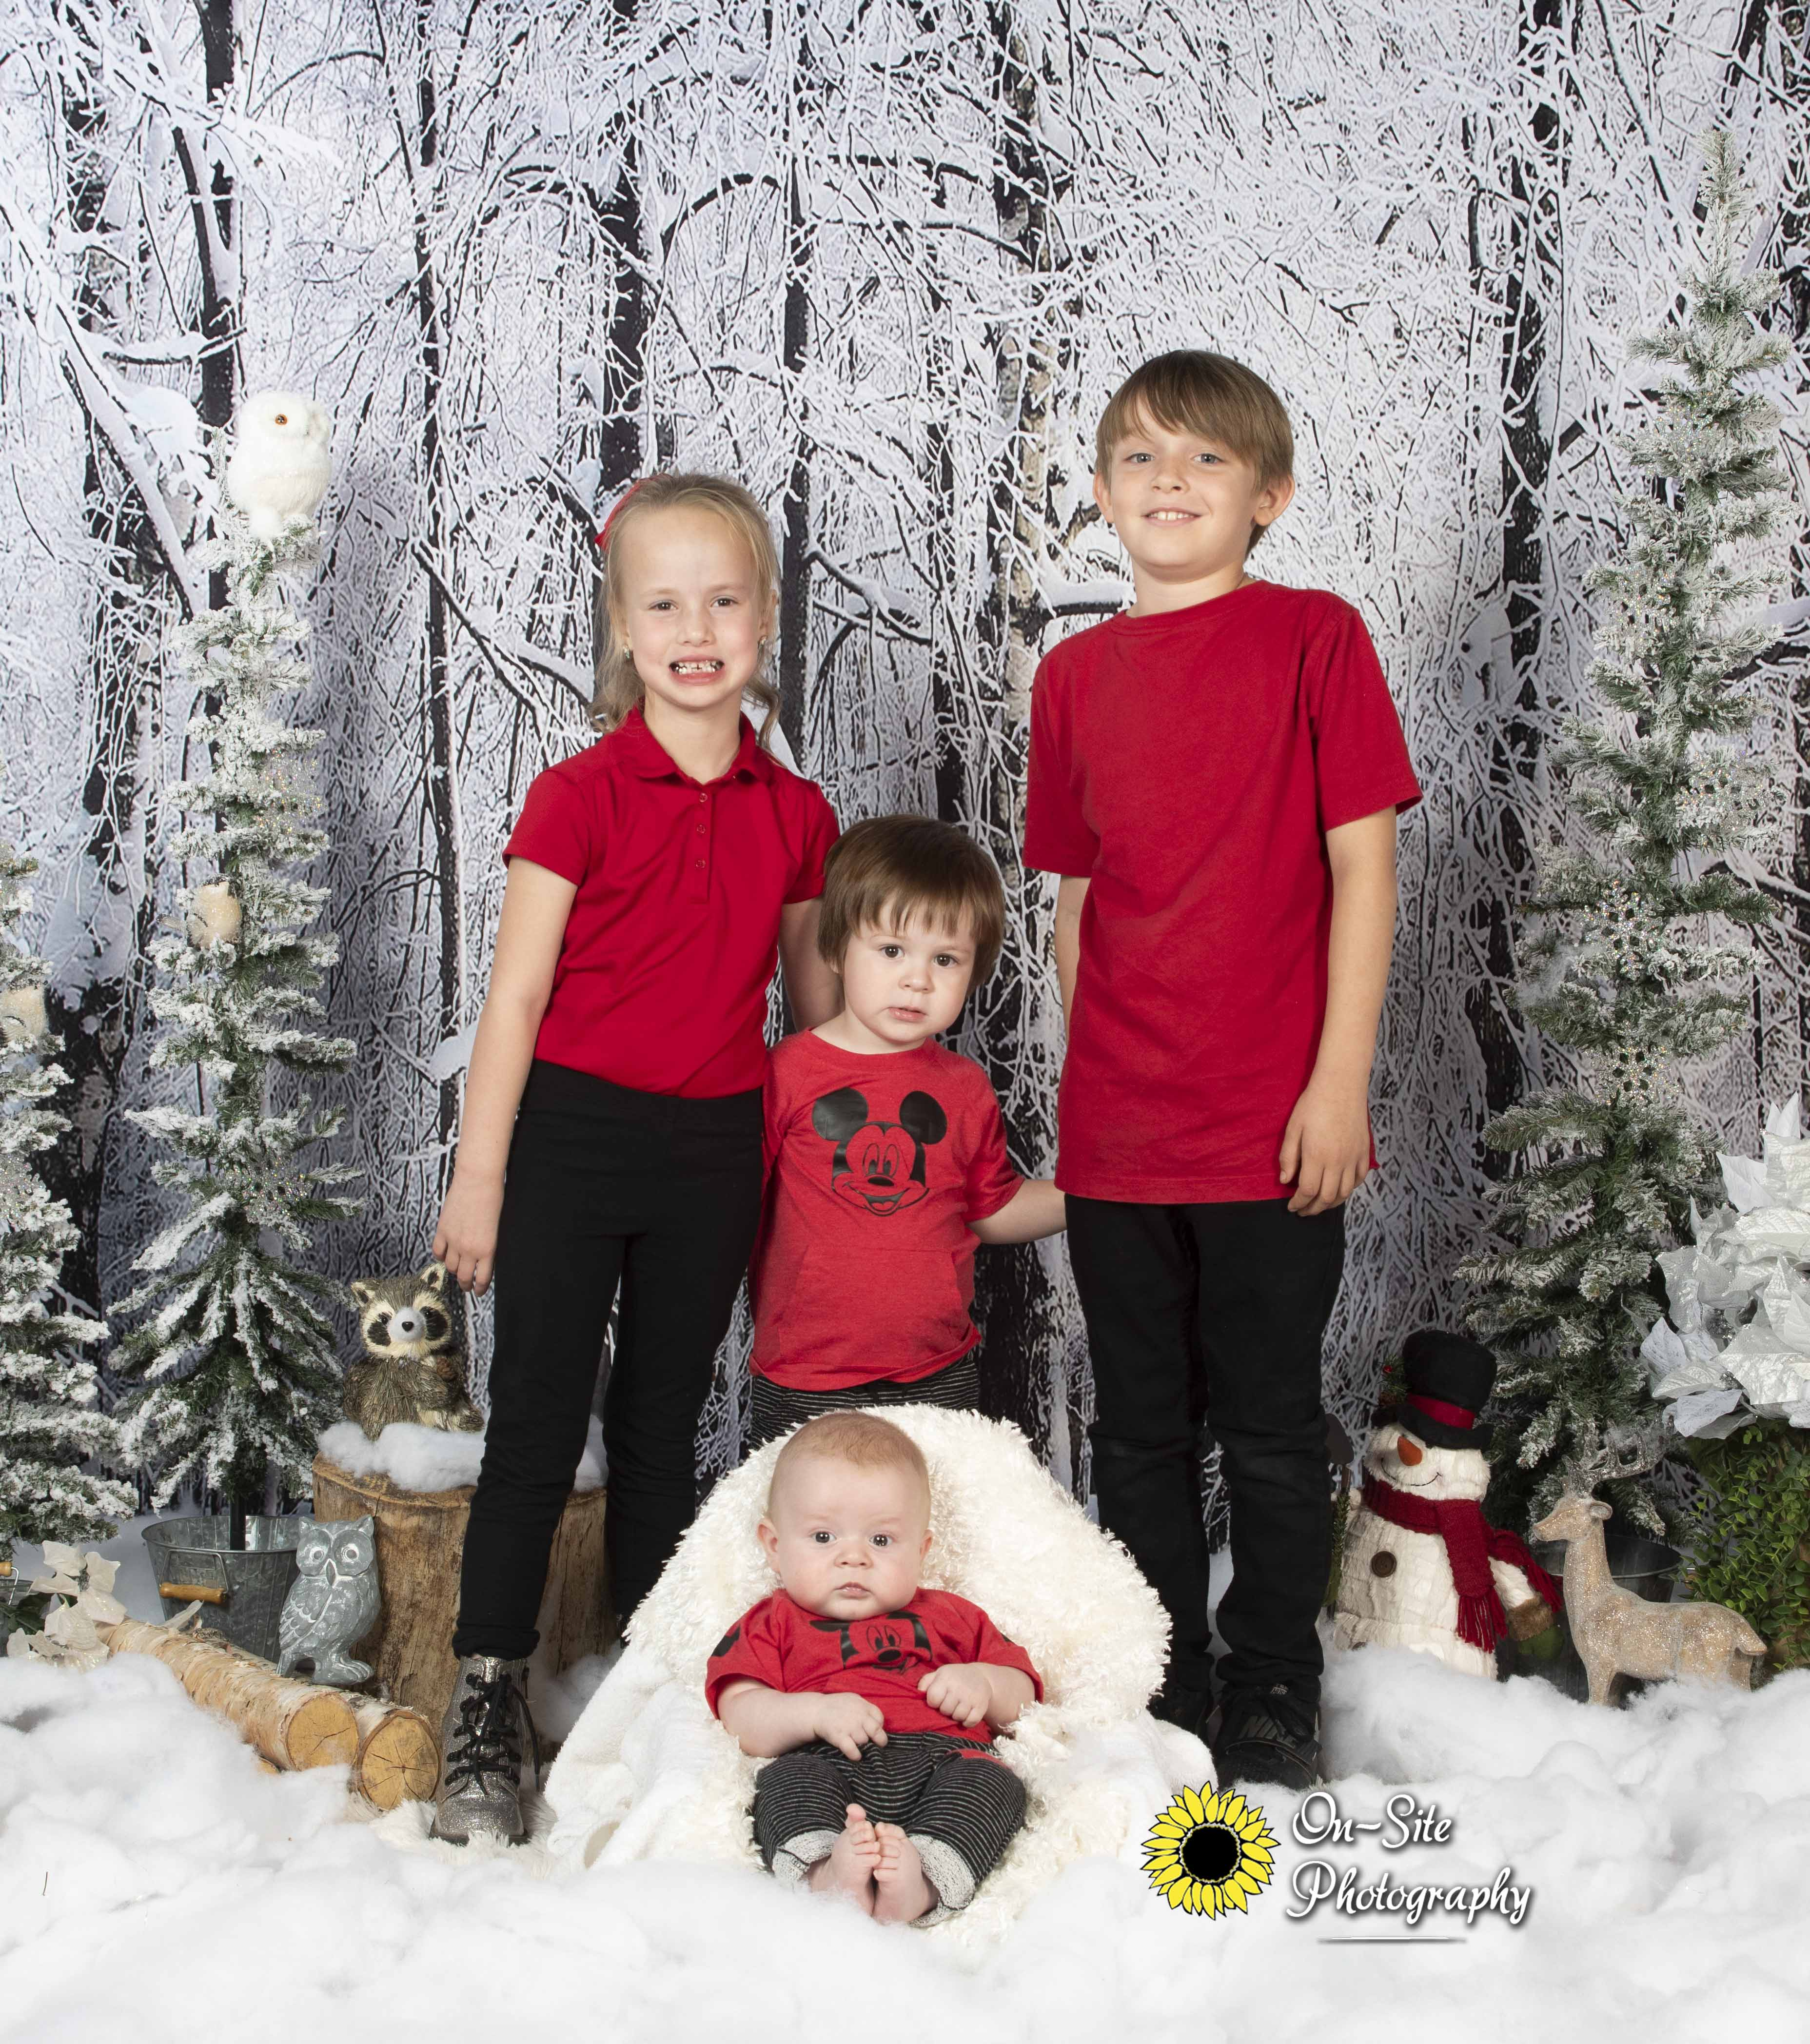 cutest childrens holiday photos, holiday